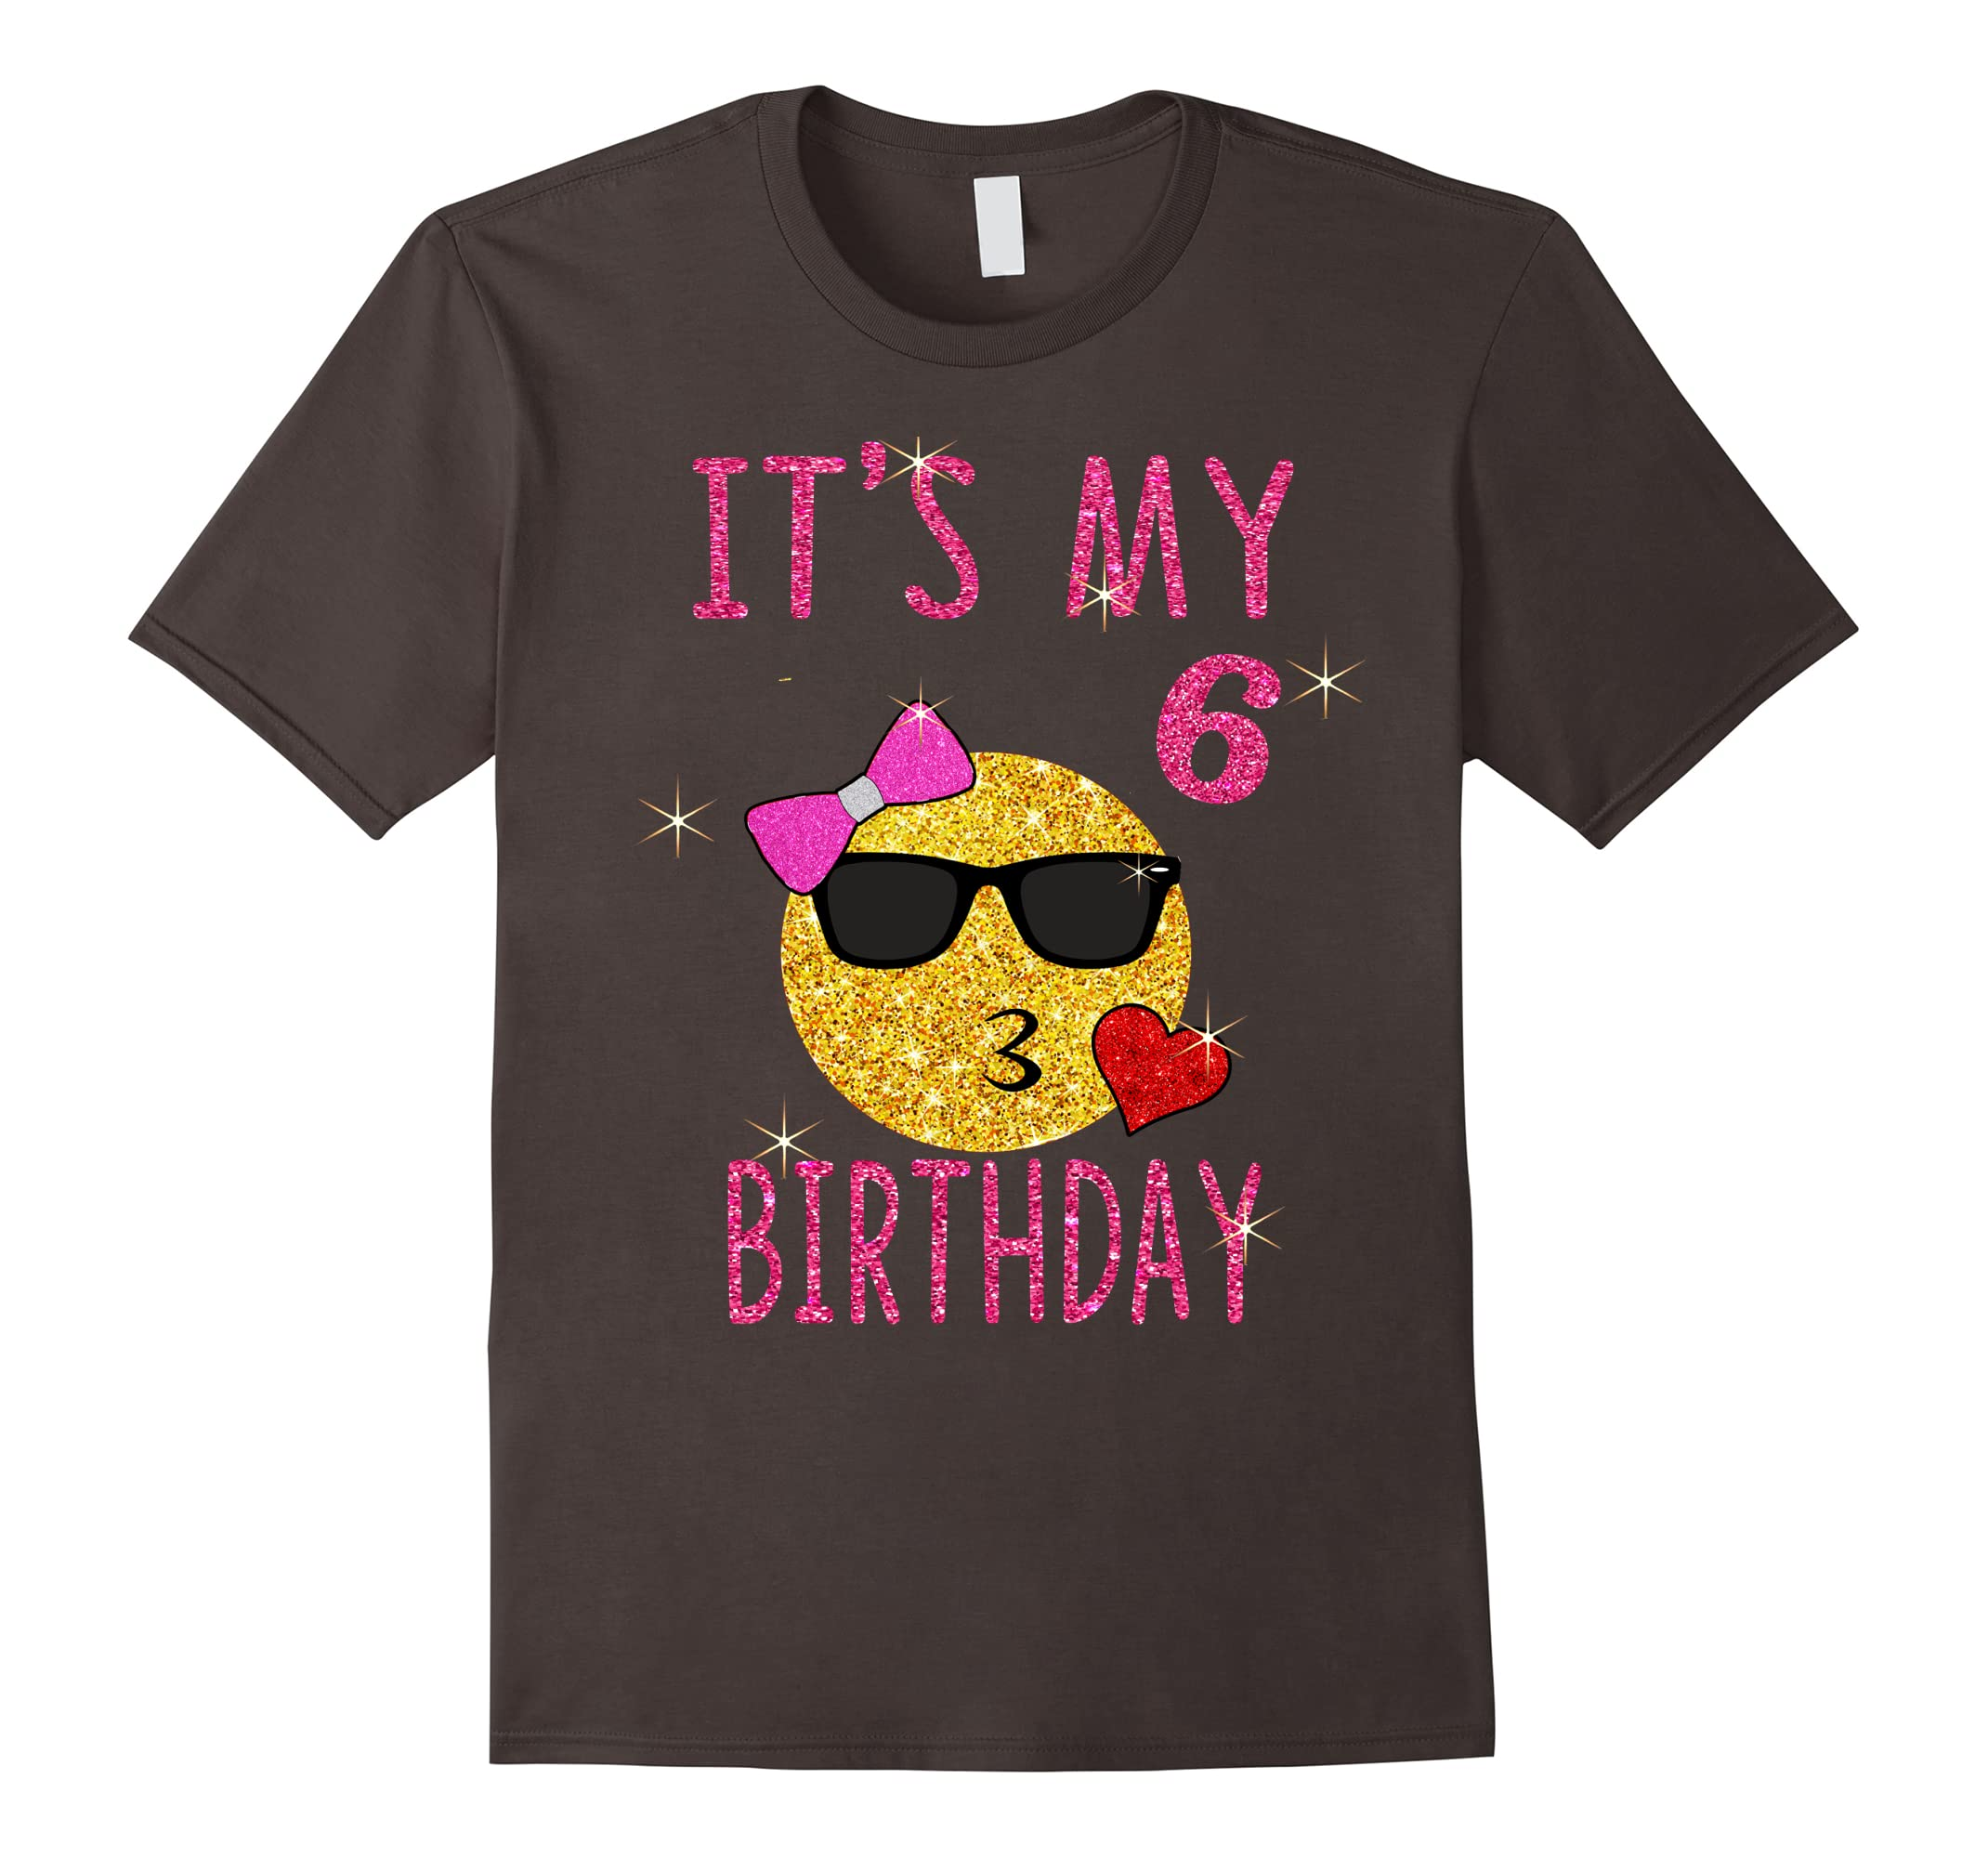 Cute Emoji 6 Years Old Shirt Its My 6th Birthday Gift RT